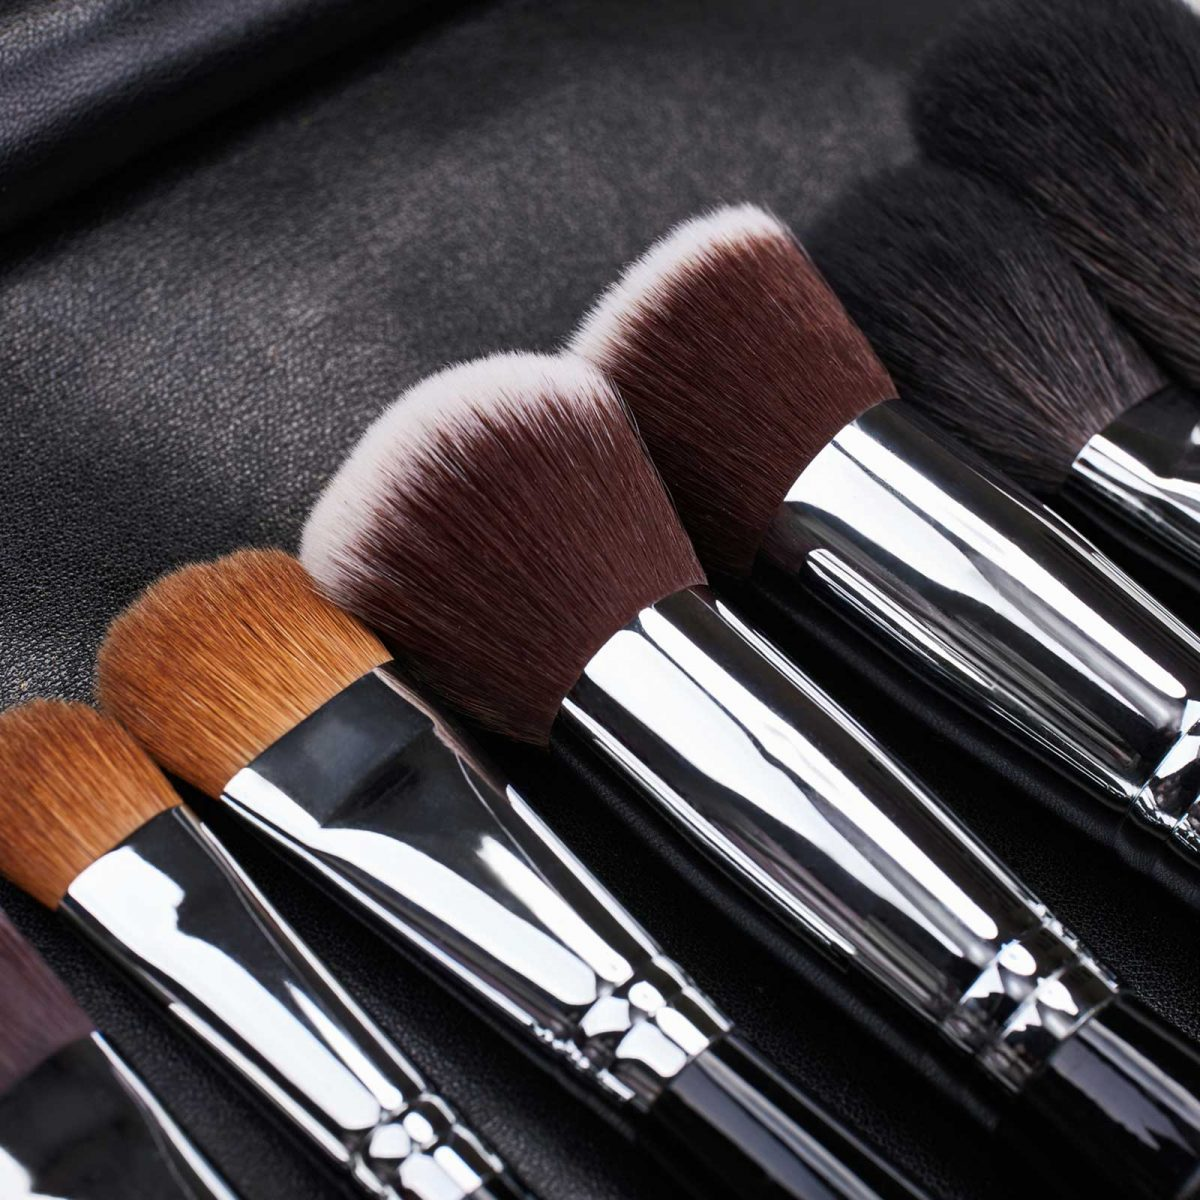 Rules for Clean Makeup | Reader's Digest